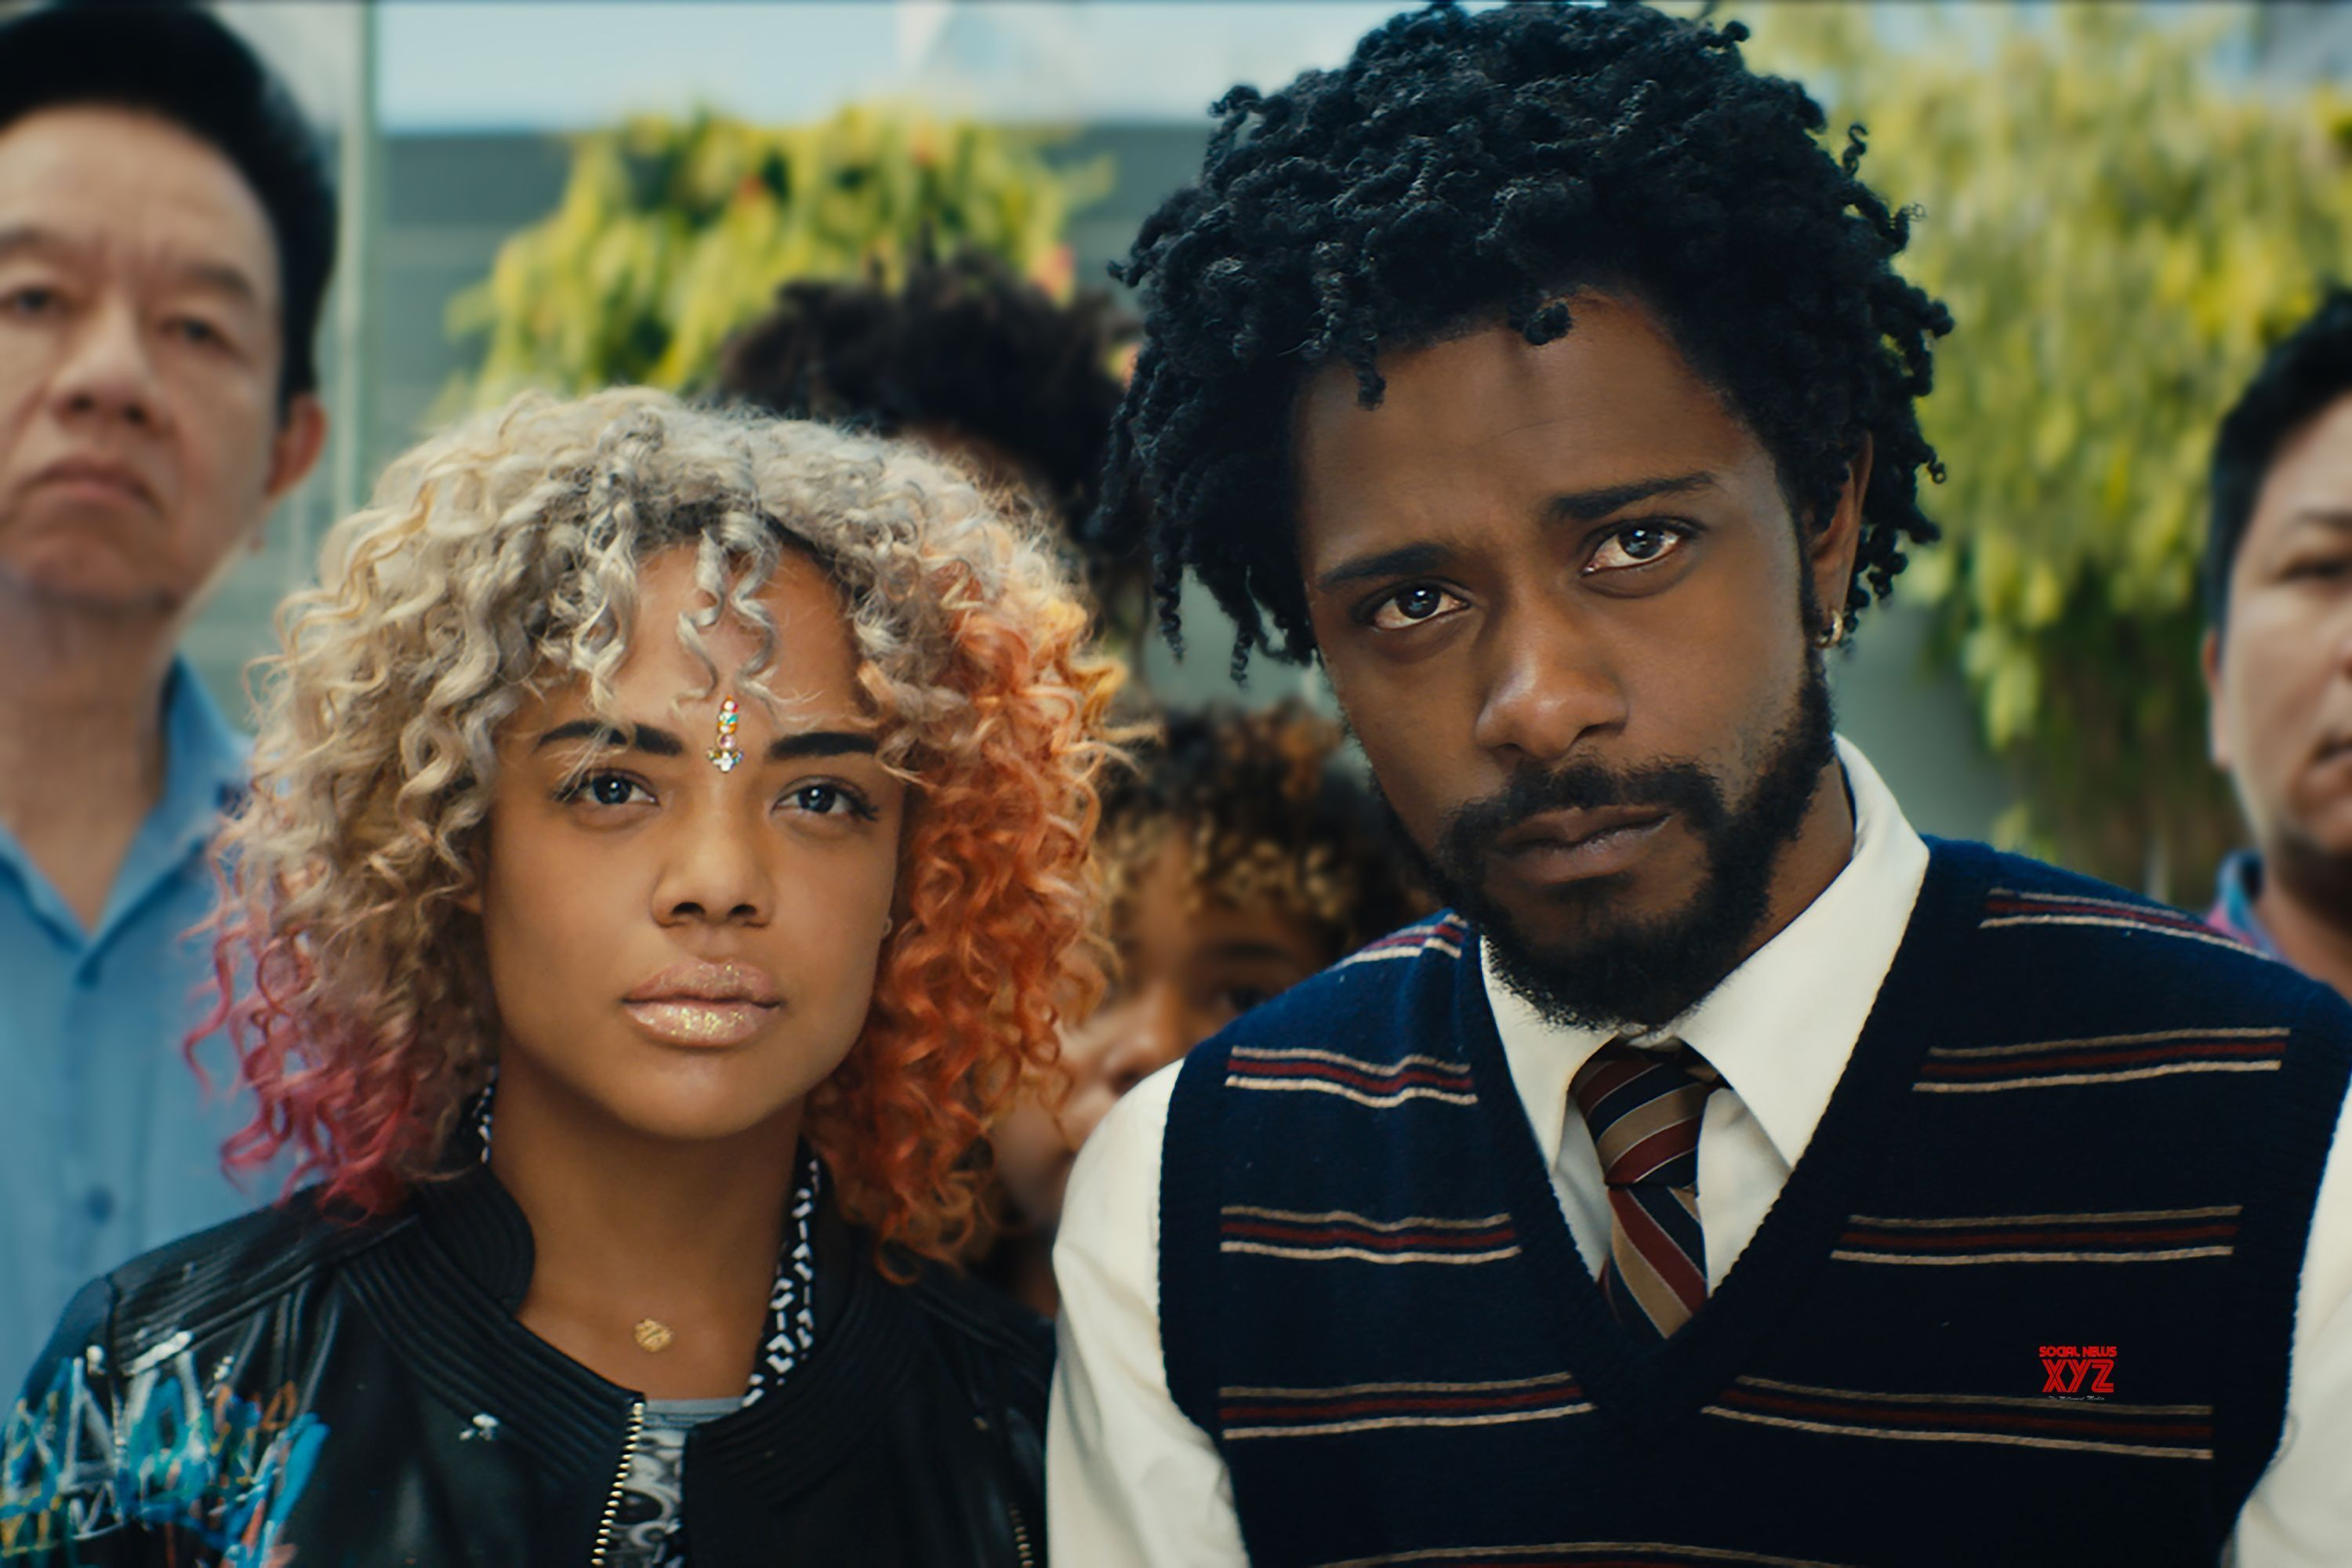 Watch the Trailer for 'Sorry to Bother You'